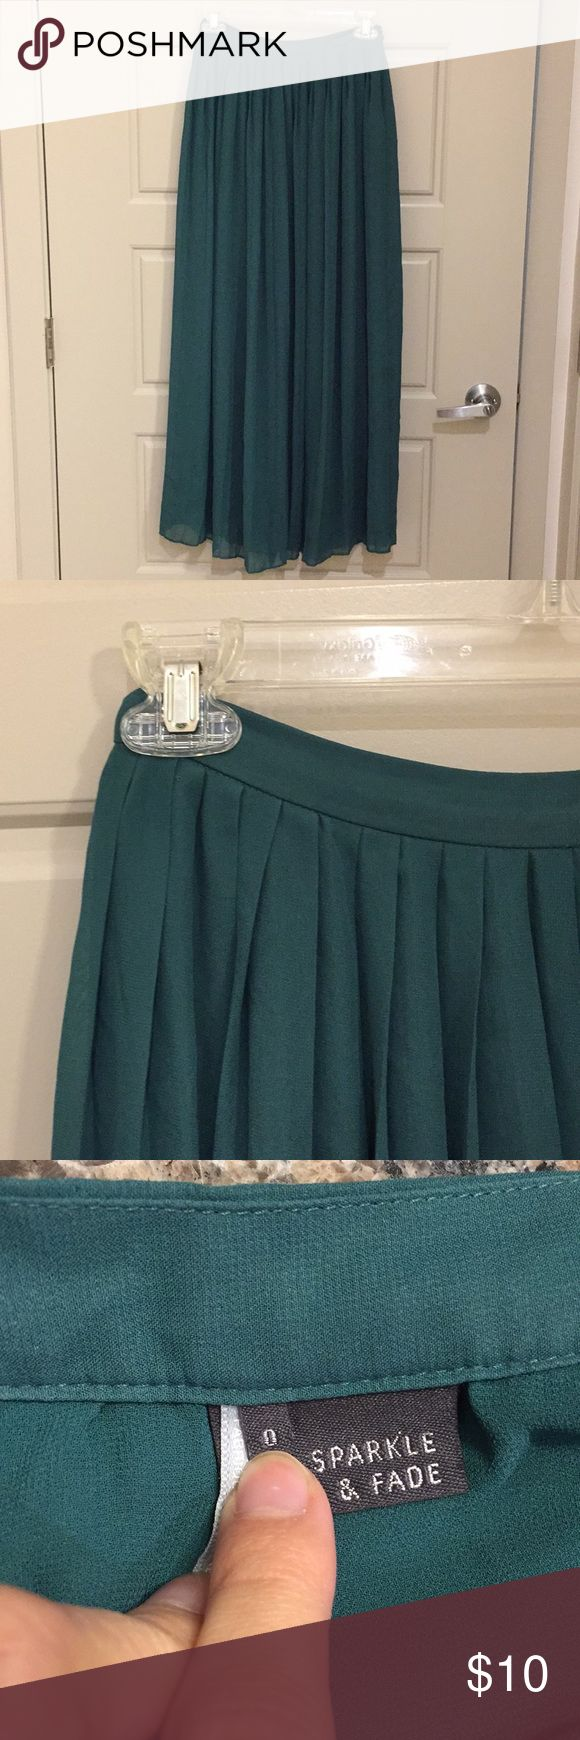 Sparkle & Fade pleated chiffon maxi skirt Beautiful emerald green maxi skirt featuring an accordion design. Multi-layered with side zip closure. Send an offer or bundle for a private discount. Sparkle & Fade Skirts Maxi